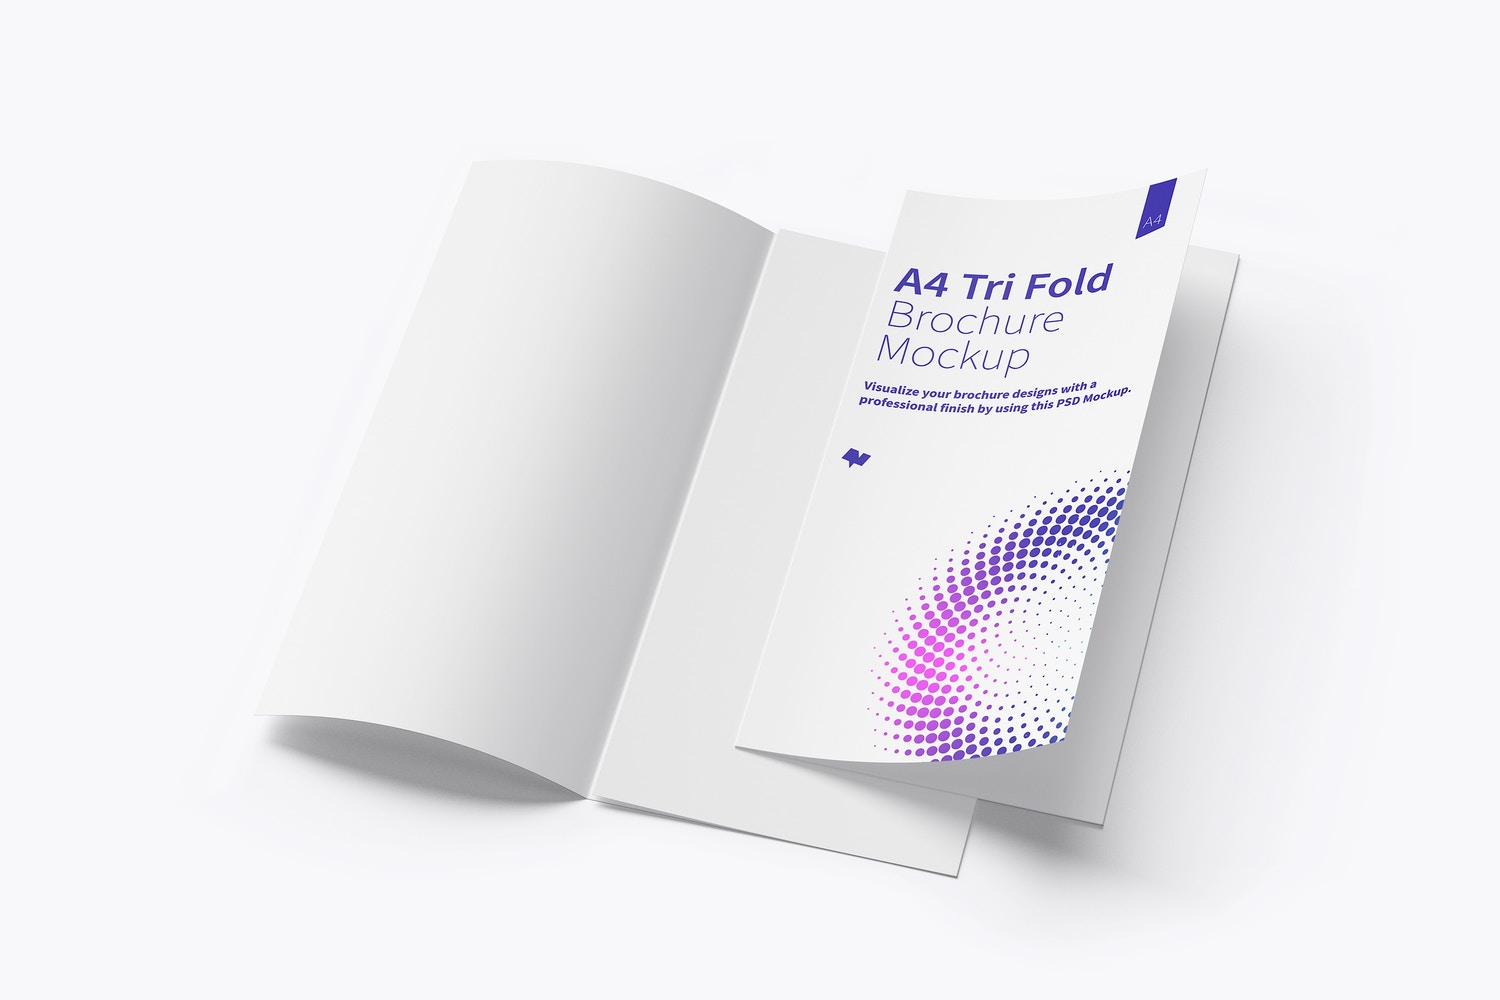 A4 Trifold Brochure Mockup 06 by Original Mockups on Original Mockups